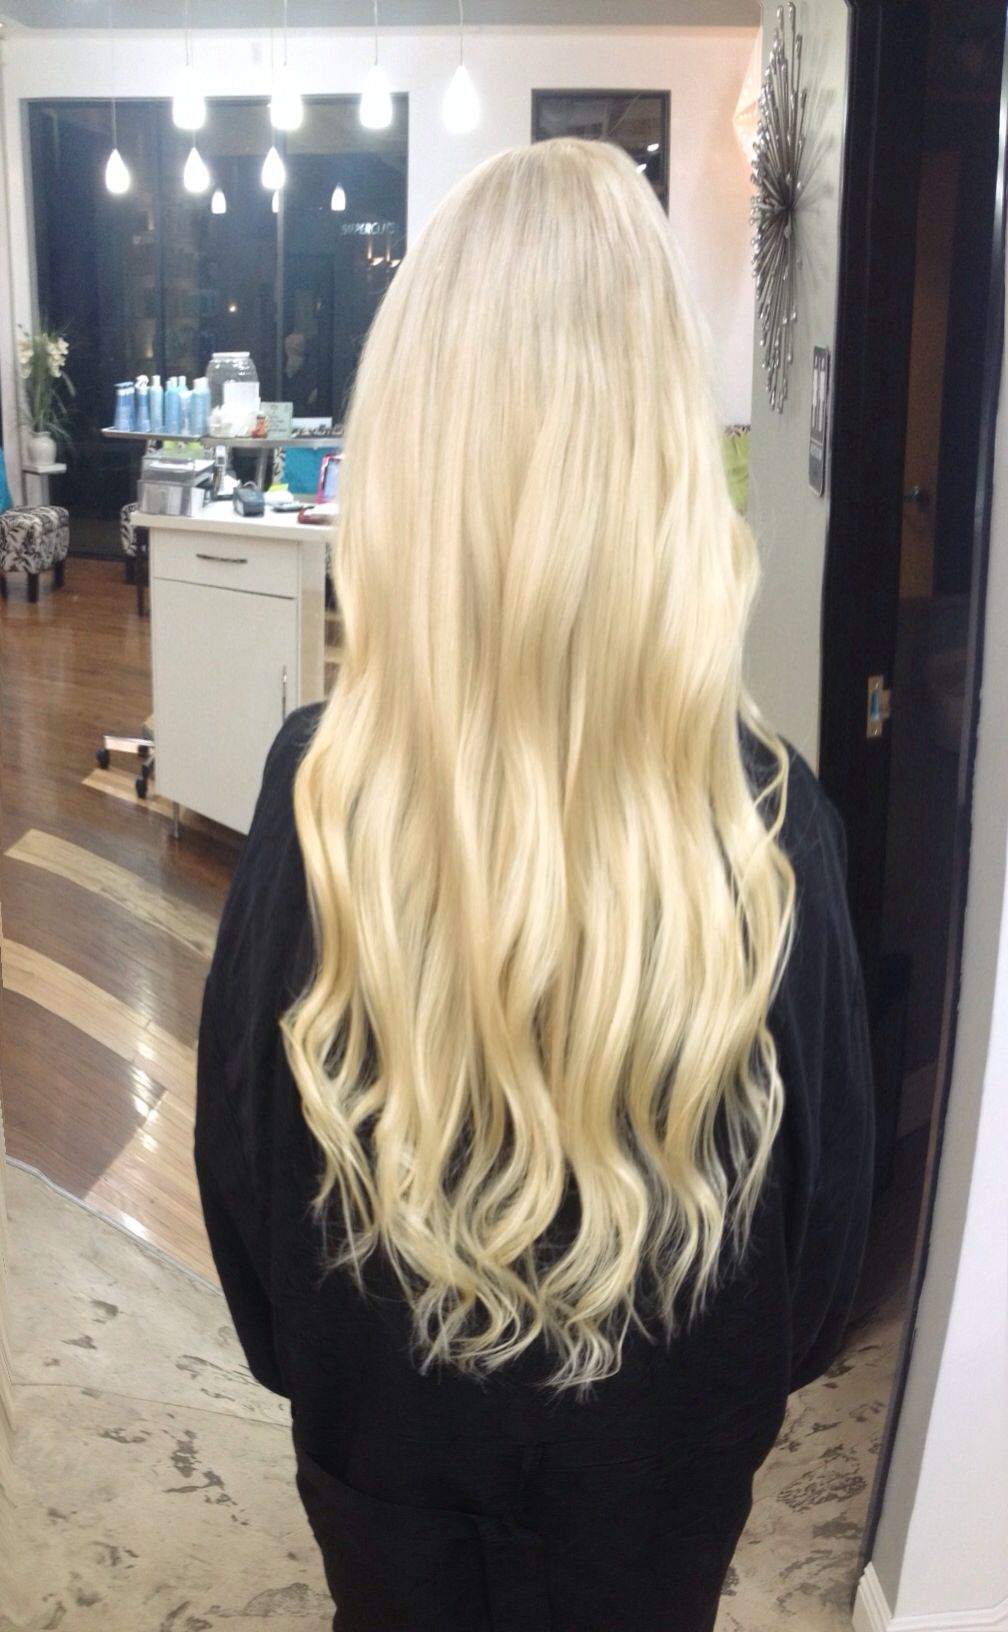 "Andrea Prchal stylist at Primo Hair Salon in Scottsdale Arizona. Follow me on Instagram: andreaprchalhairaz or like me on facebook: "" Andrea Prchal Hair Design blonde hair highlights extensions long hair curls"